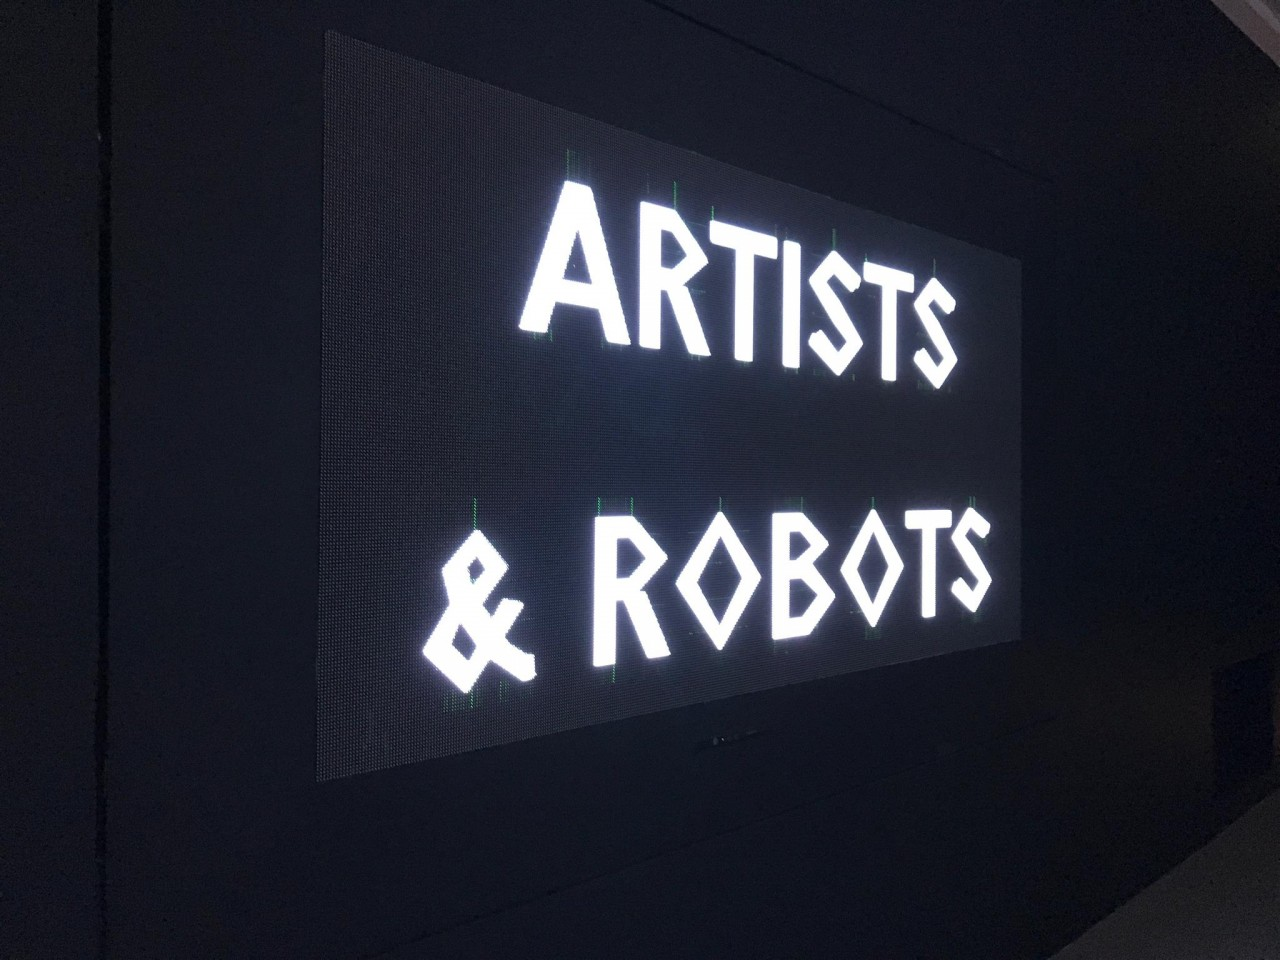 Artists & Robots at the Astana Contemporary Art Center, Expo 2017